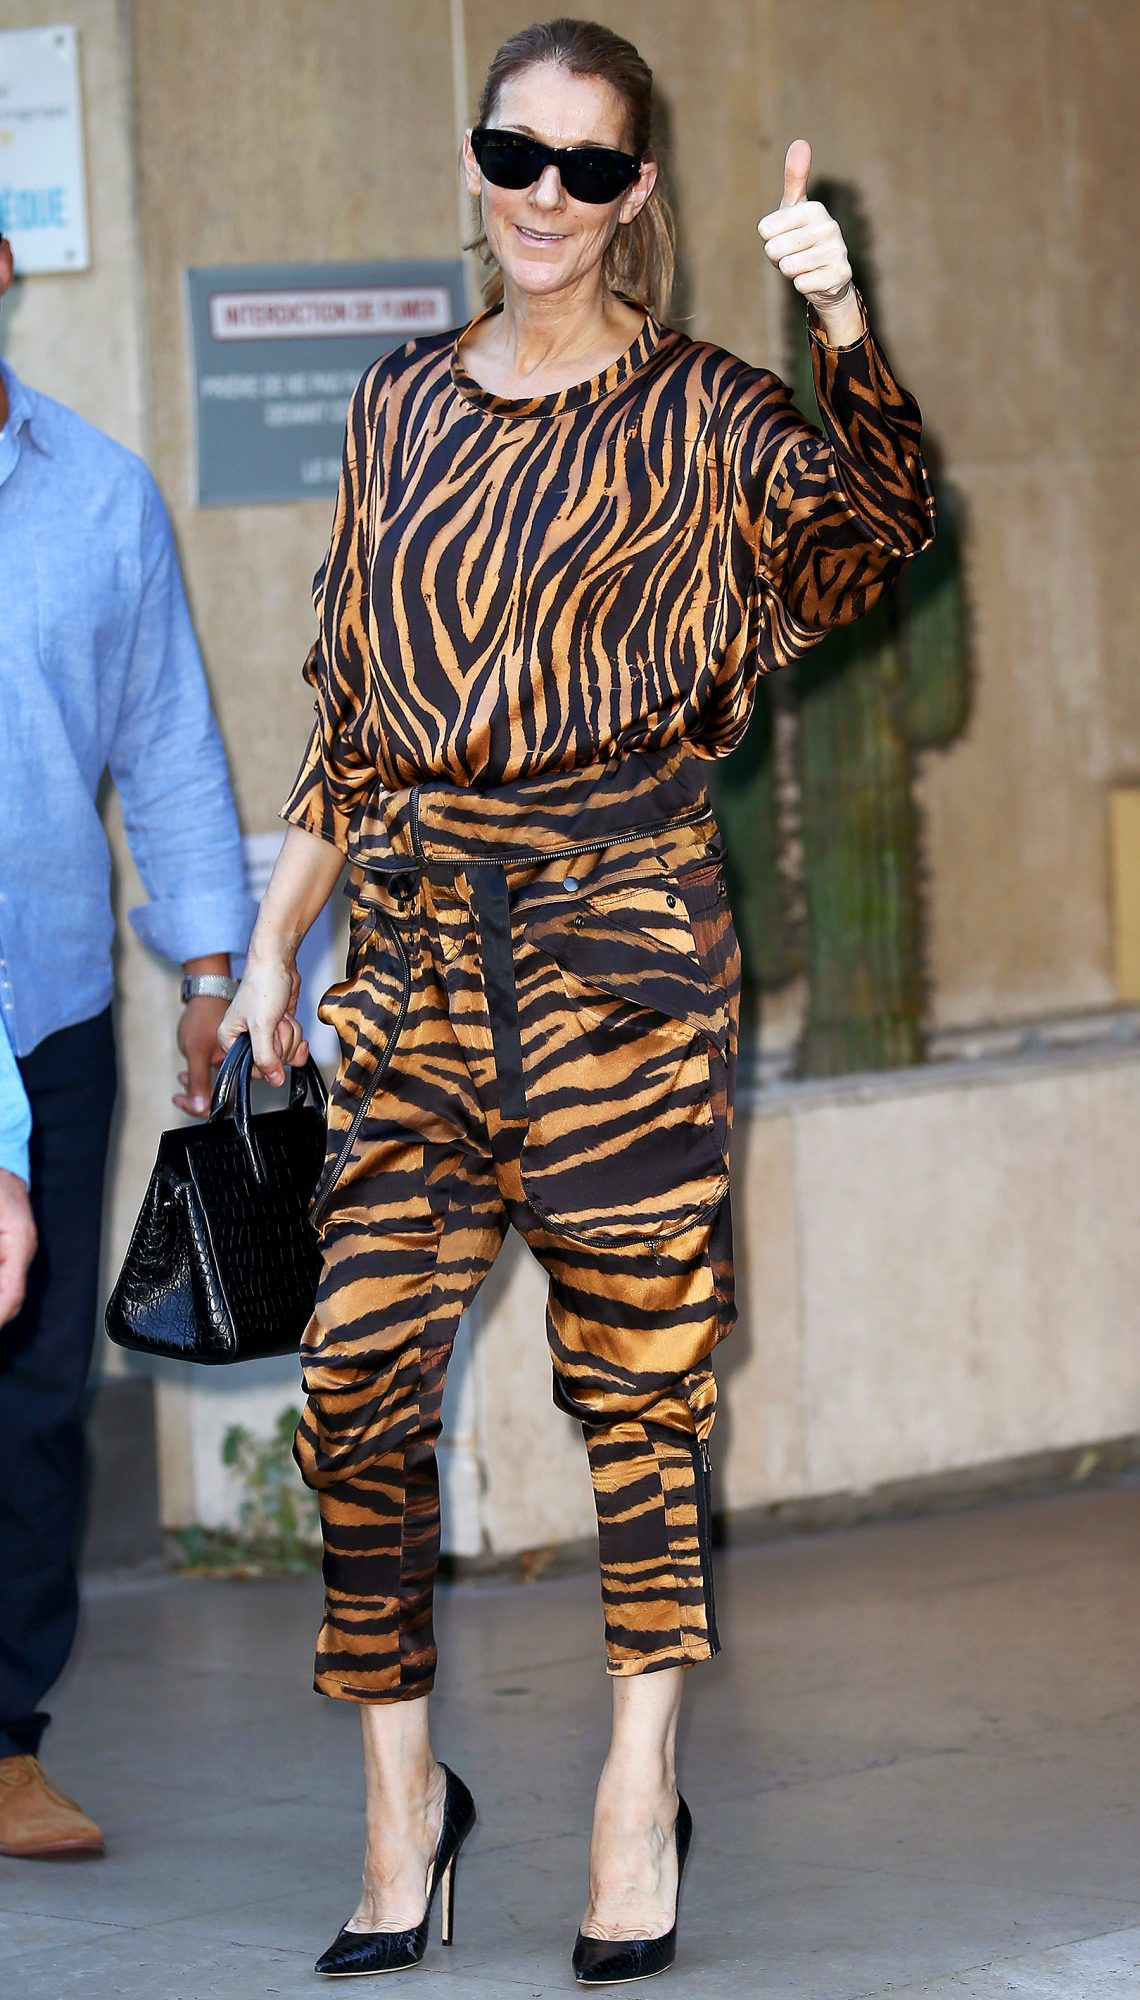 Celine Dion leaves her Hotel for the Kenclub sport center in tiger clothes